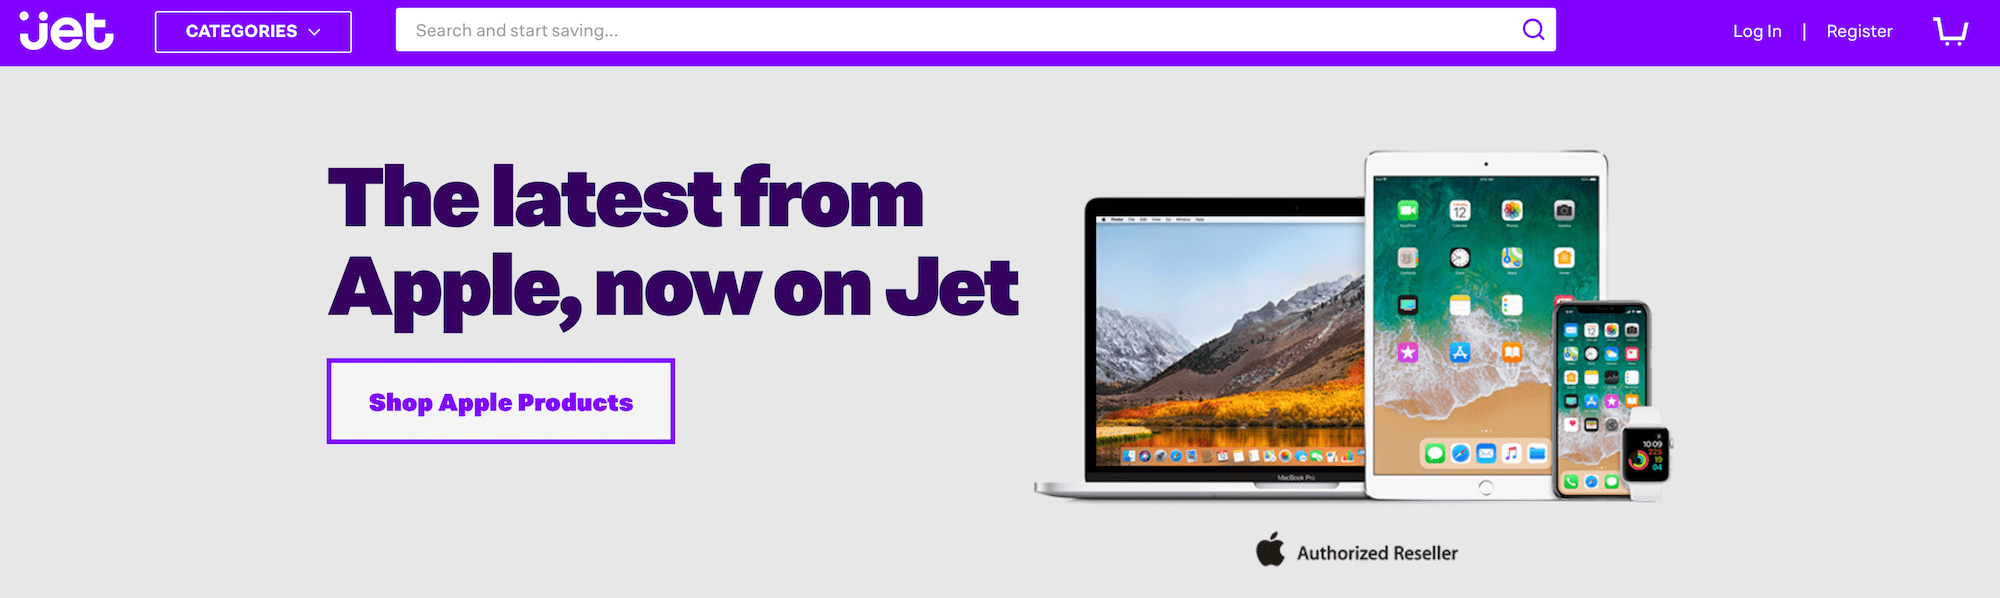 Apple products now on Jet.com